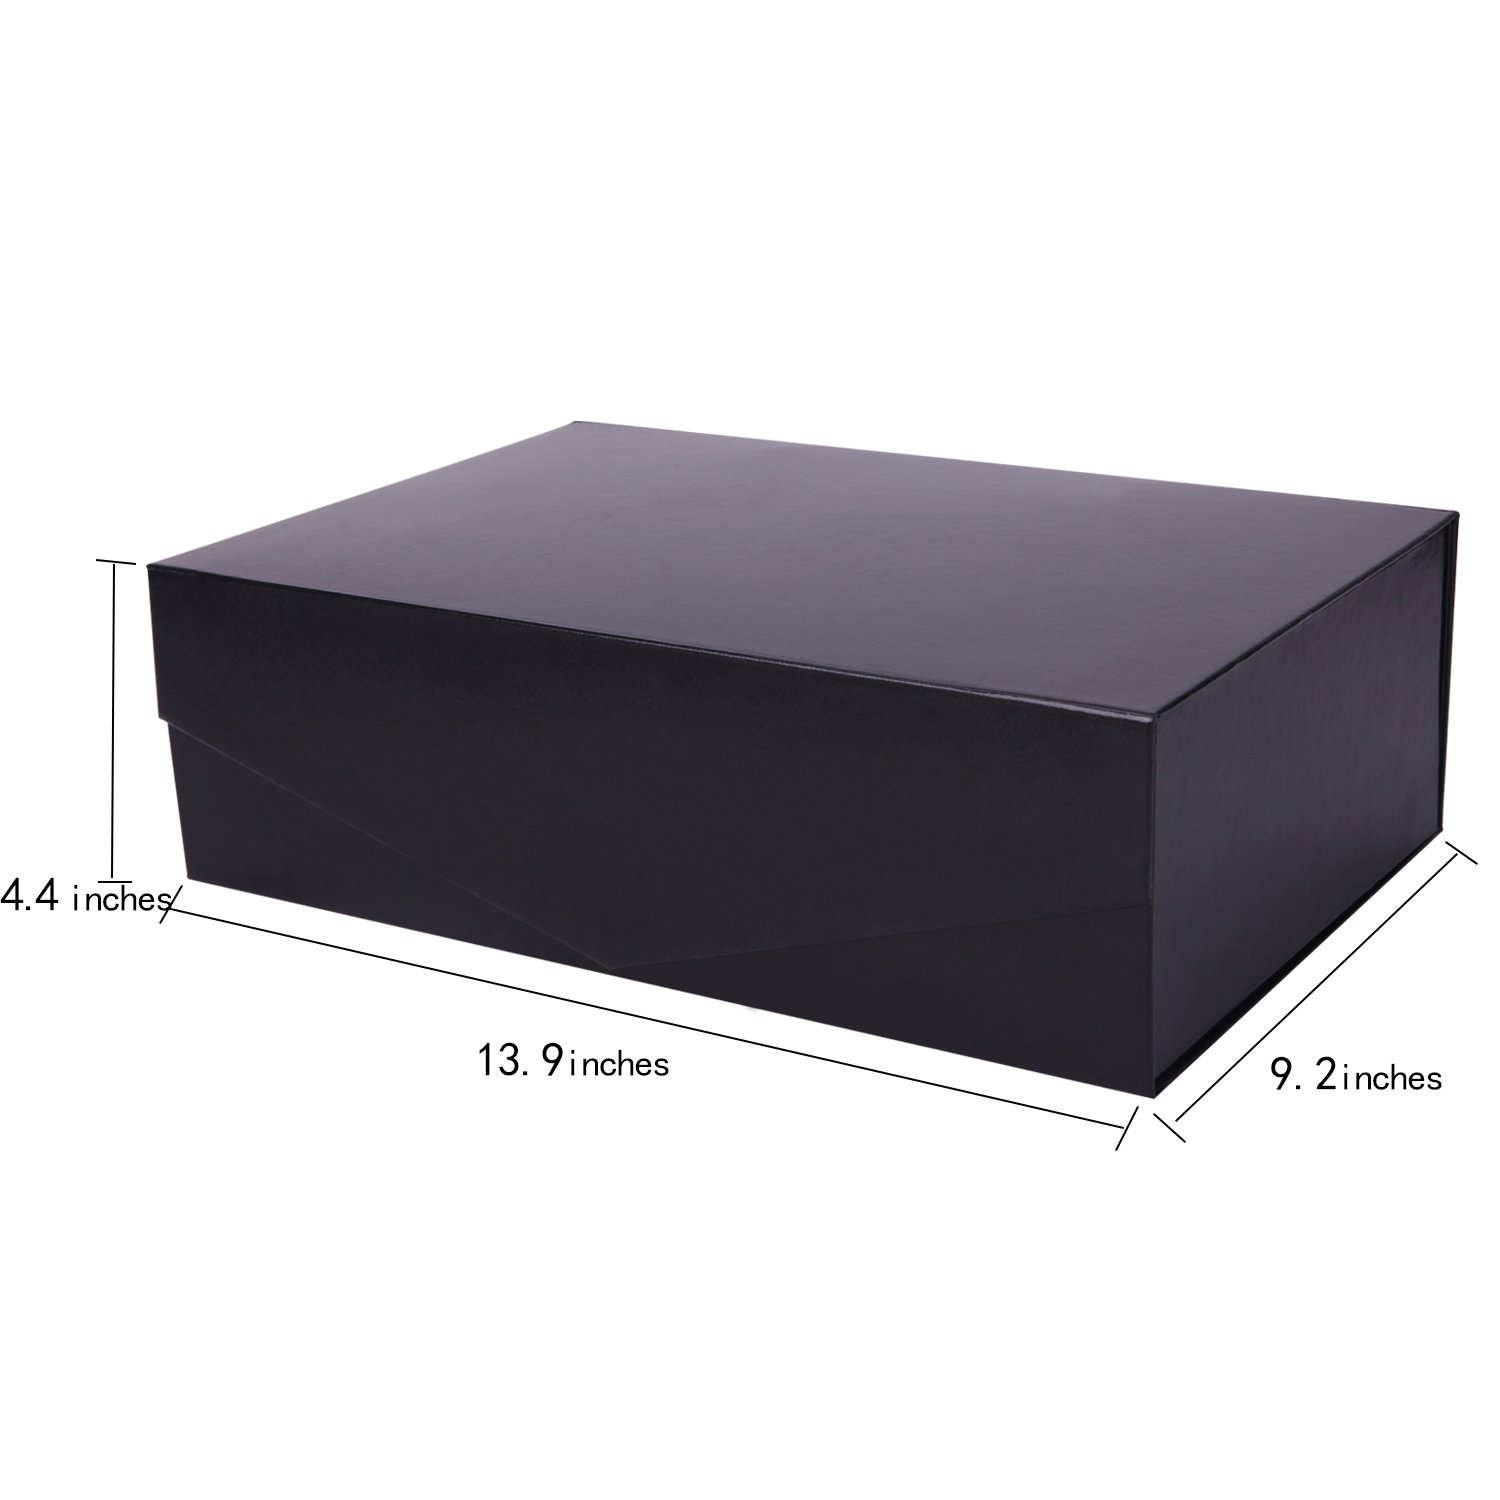 Large (13.9'' x 4.4'' x 9.2'') Gift Box Magnetic Closure Box Magnetic Closure Collapsible Gift Box Hamper Box Decorative Storage Box Decorative Boxes with Magnetic Closure (Black, Pack of 5 by PACKHOME by PACKHOME (Image #4)